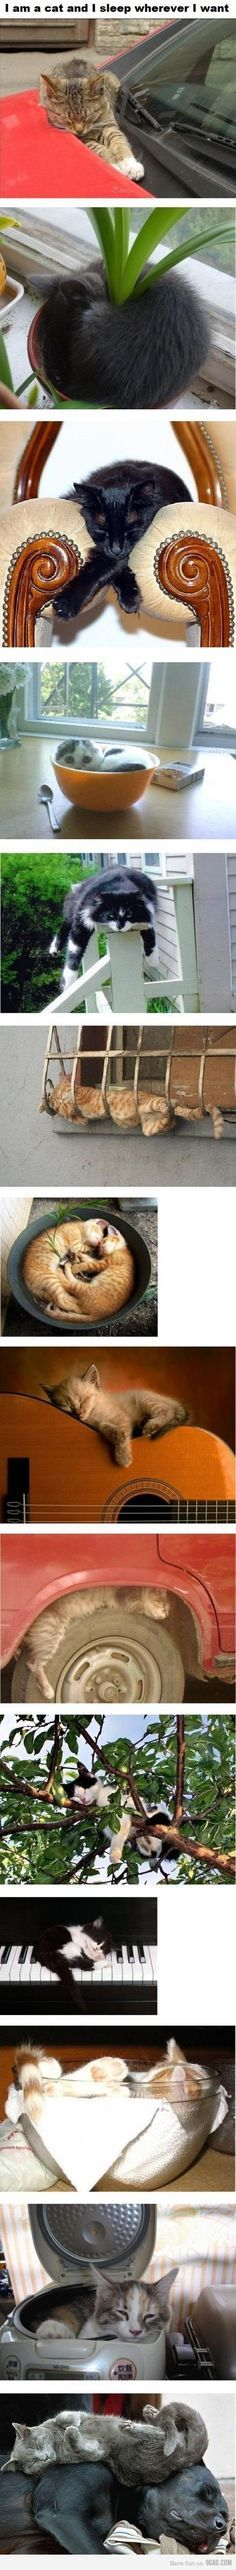 Cats are the best